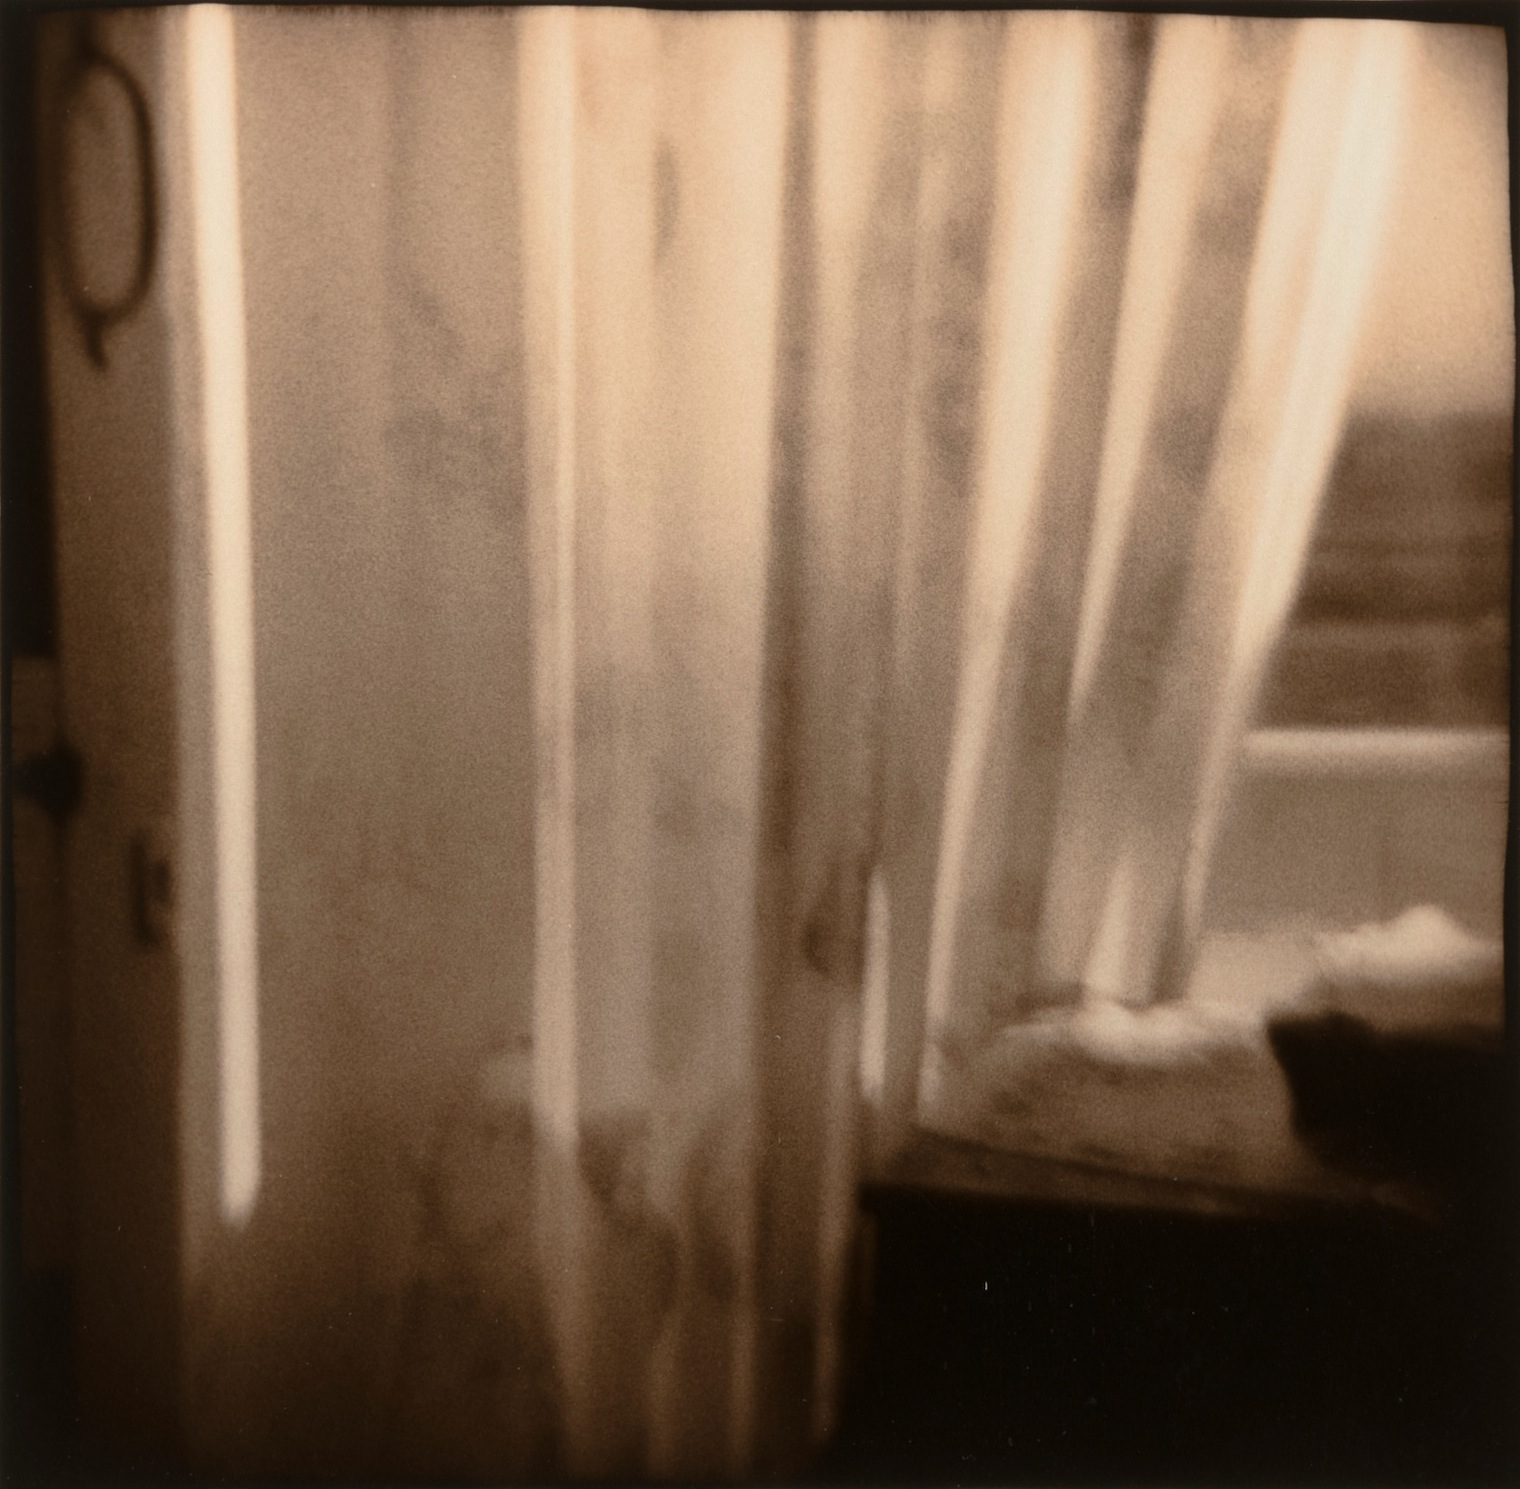 Nancy Rexroth, Curtains, Pomeroy, Ohio, 1970